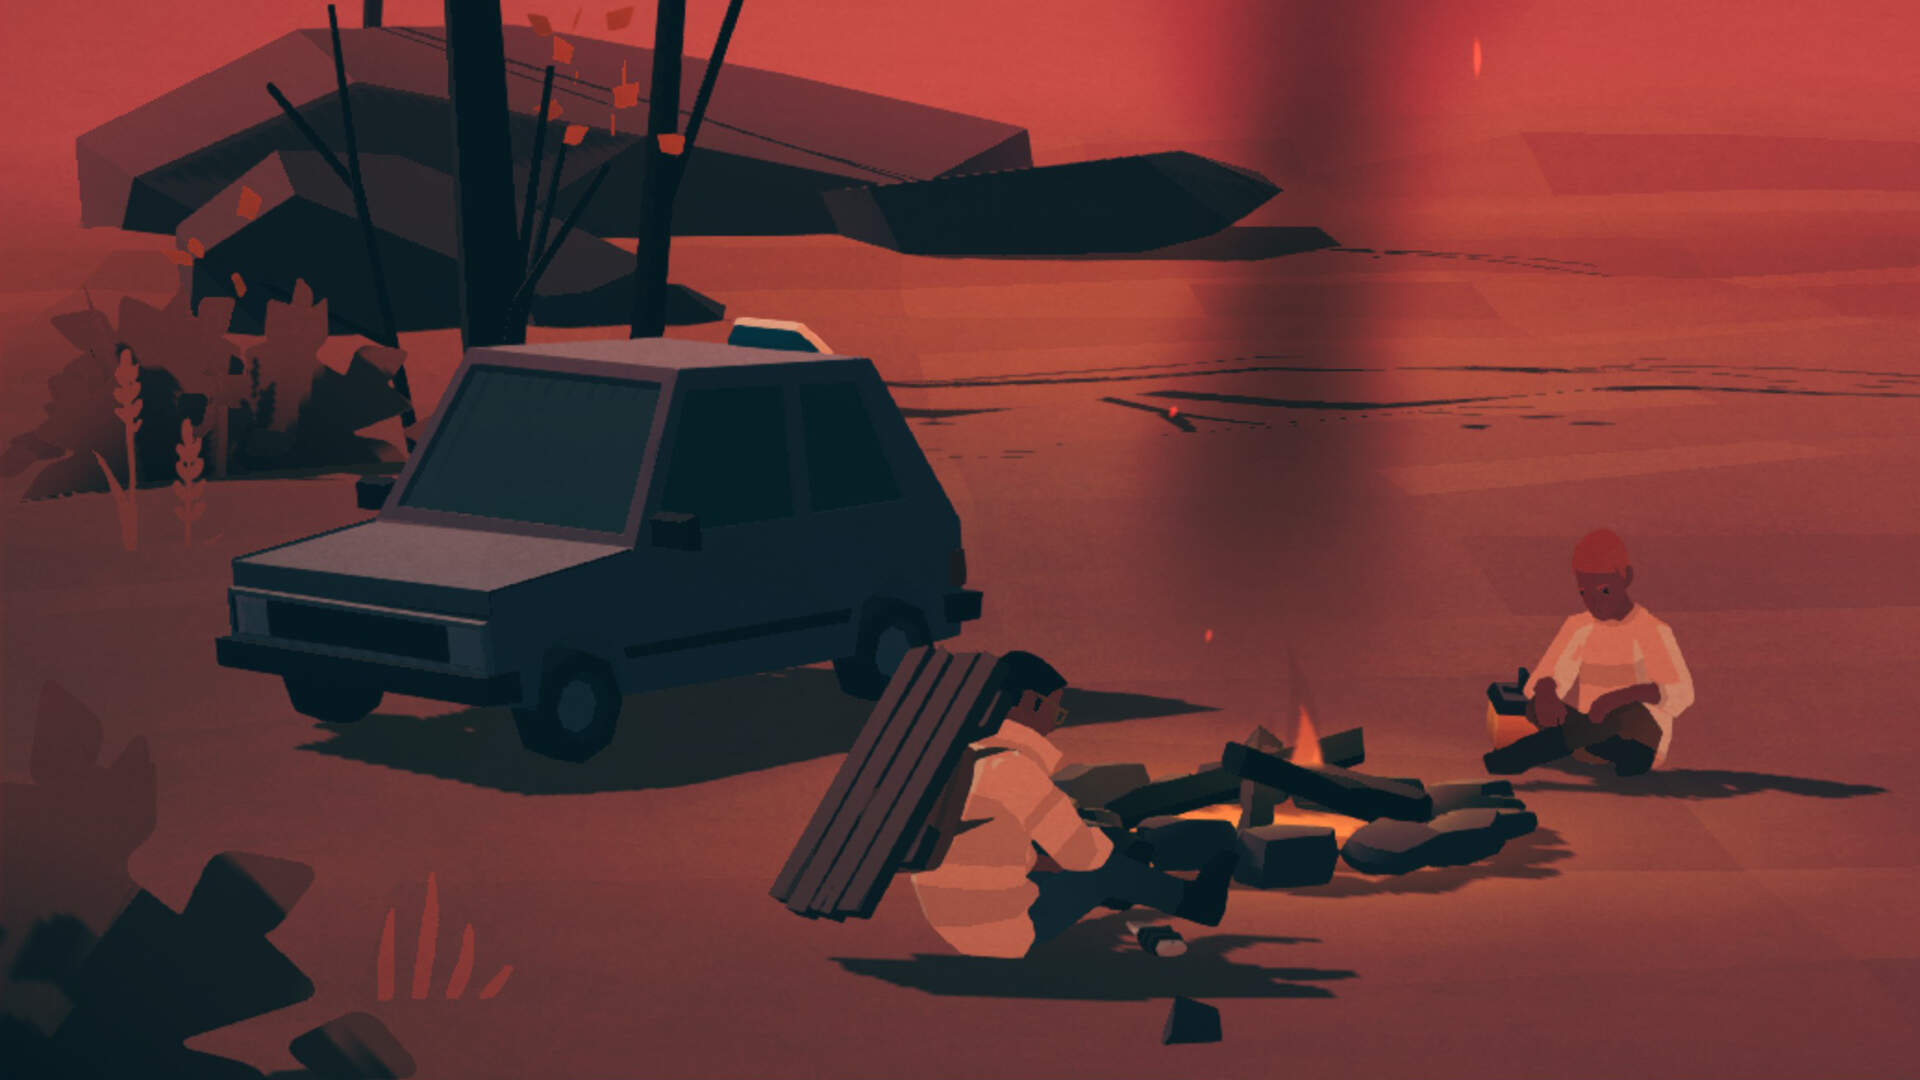 Overland Review: Where Not Even Knife-Wielding Dogs Can Save You